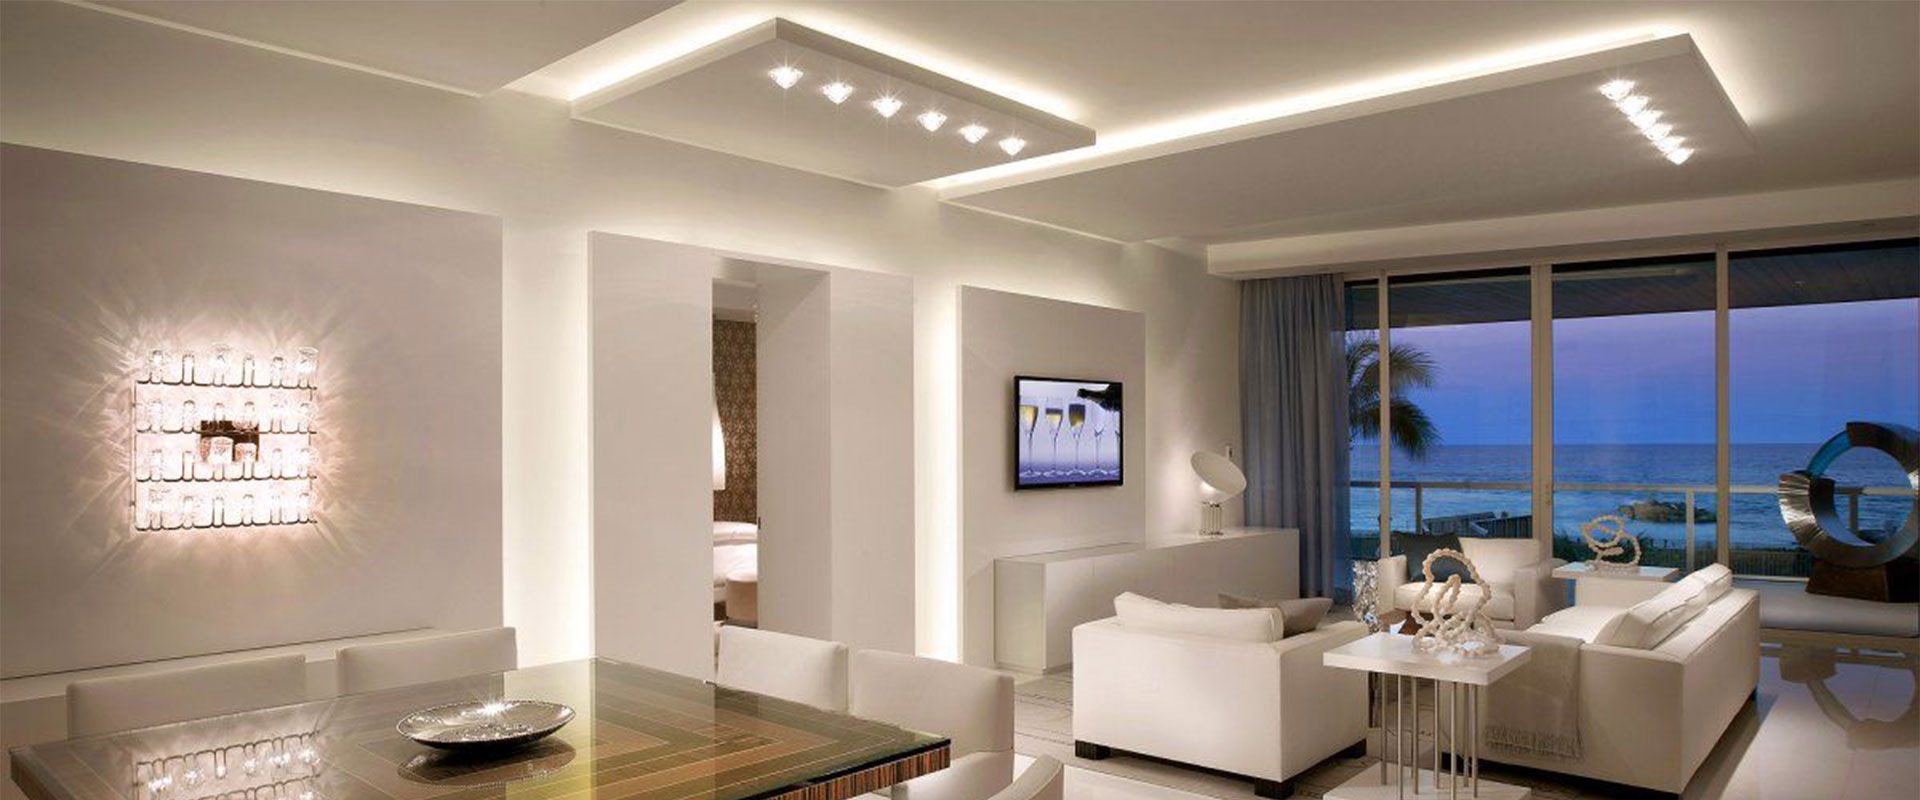 led-lighting-installation